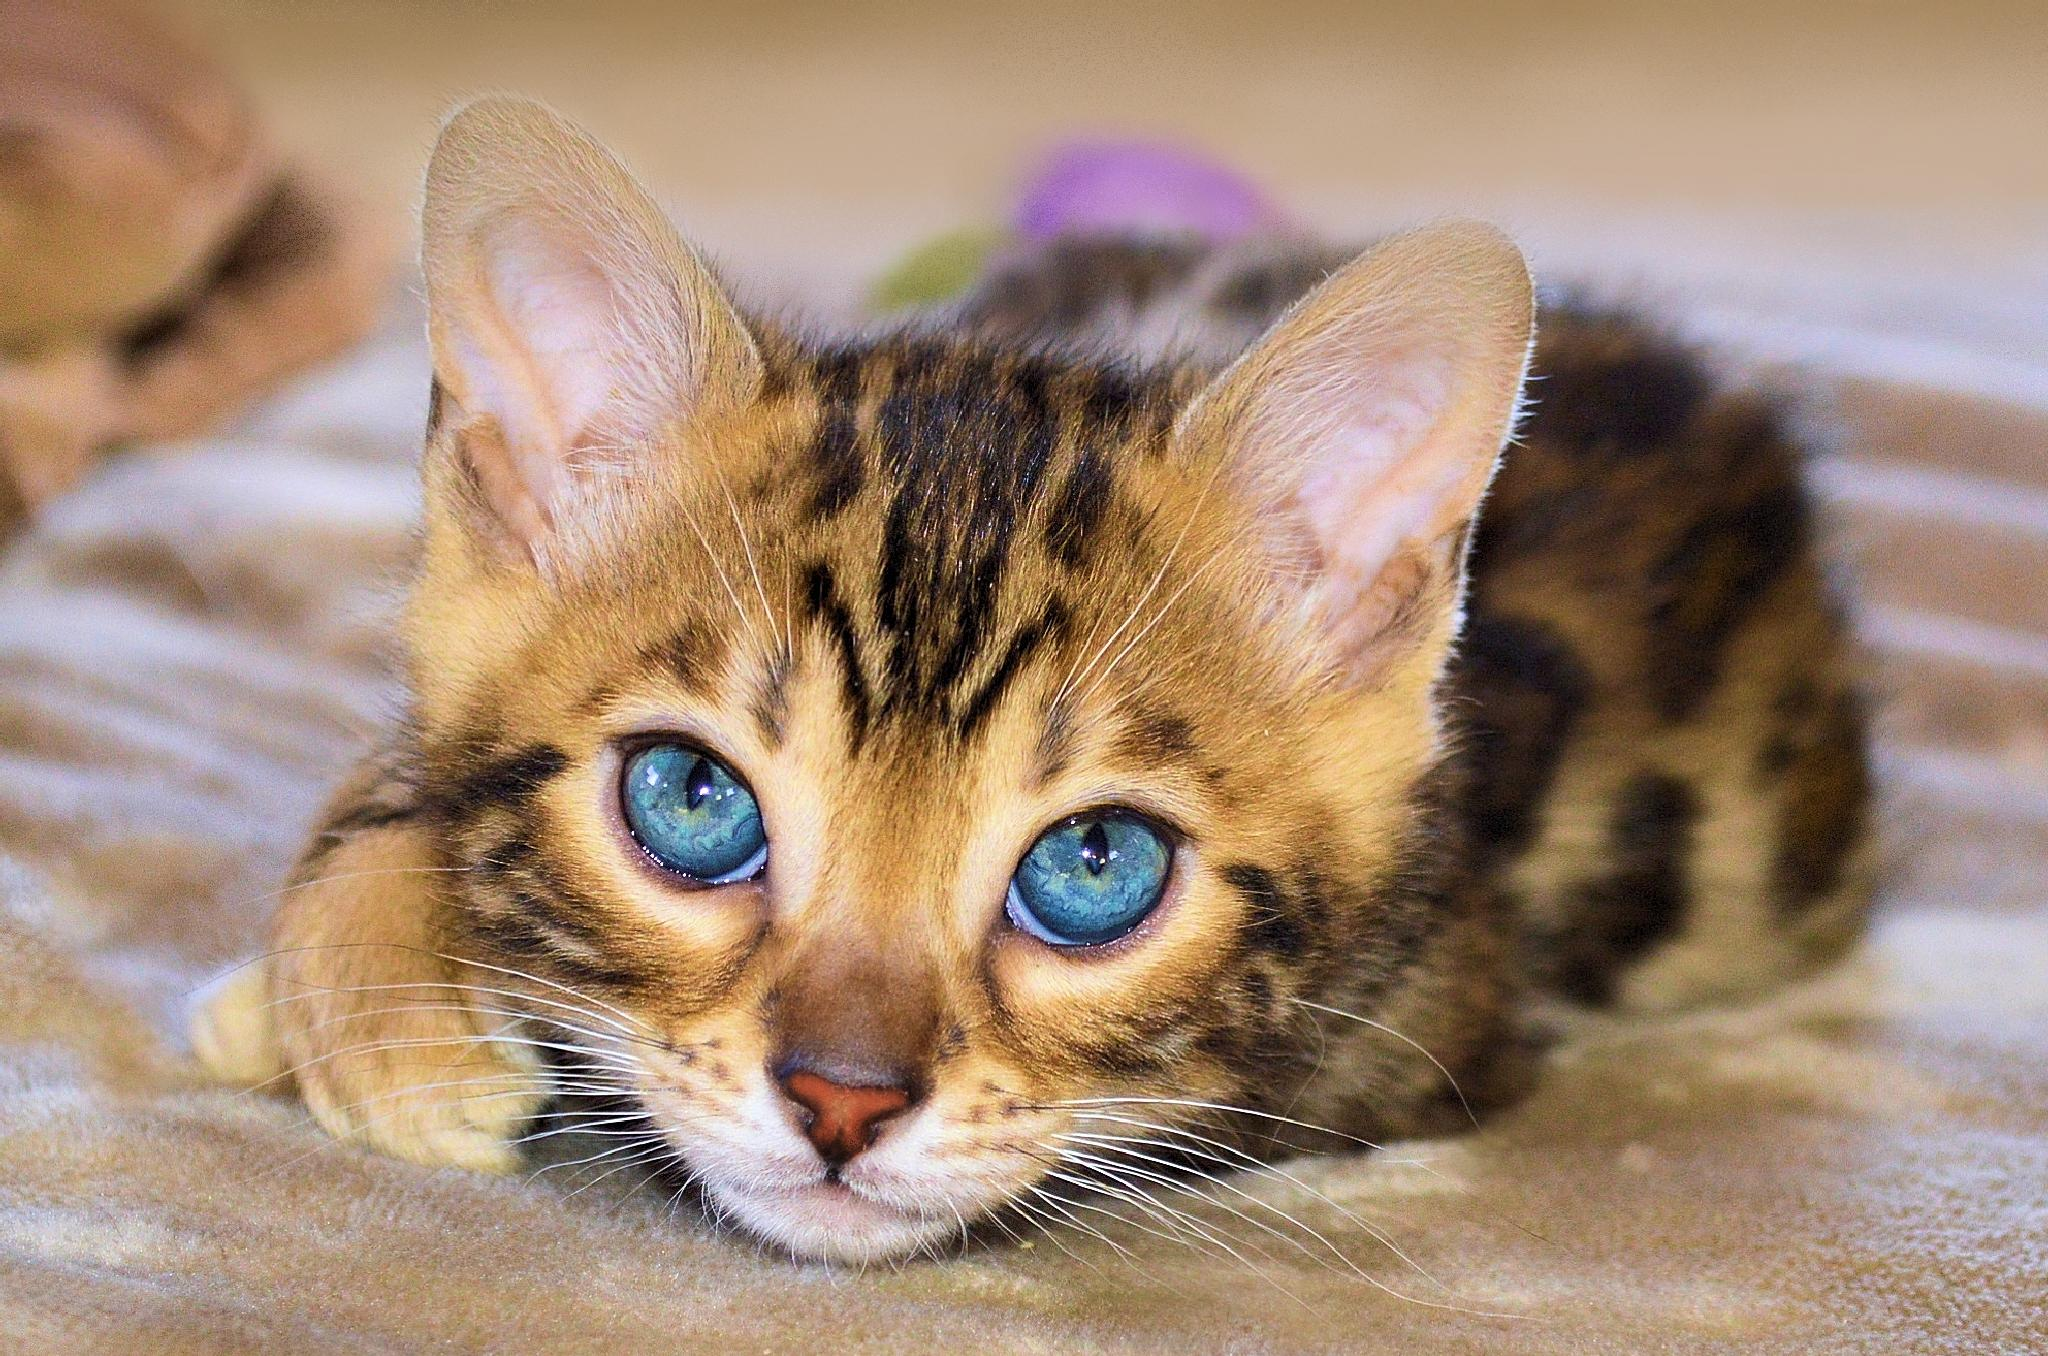 Bengal kitten by jane.girardot